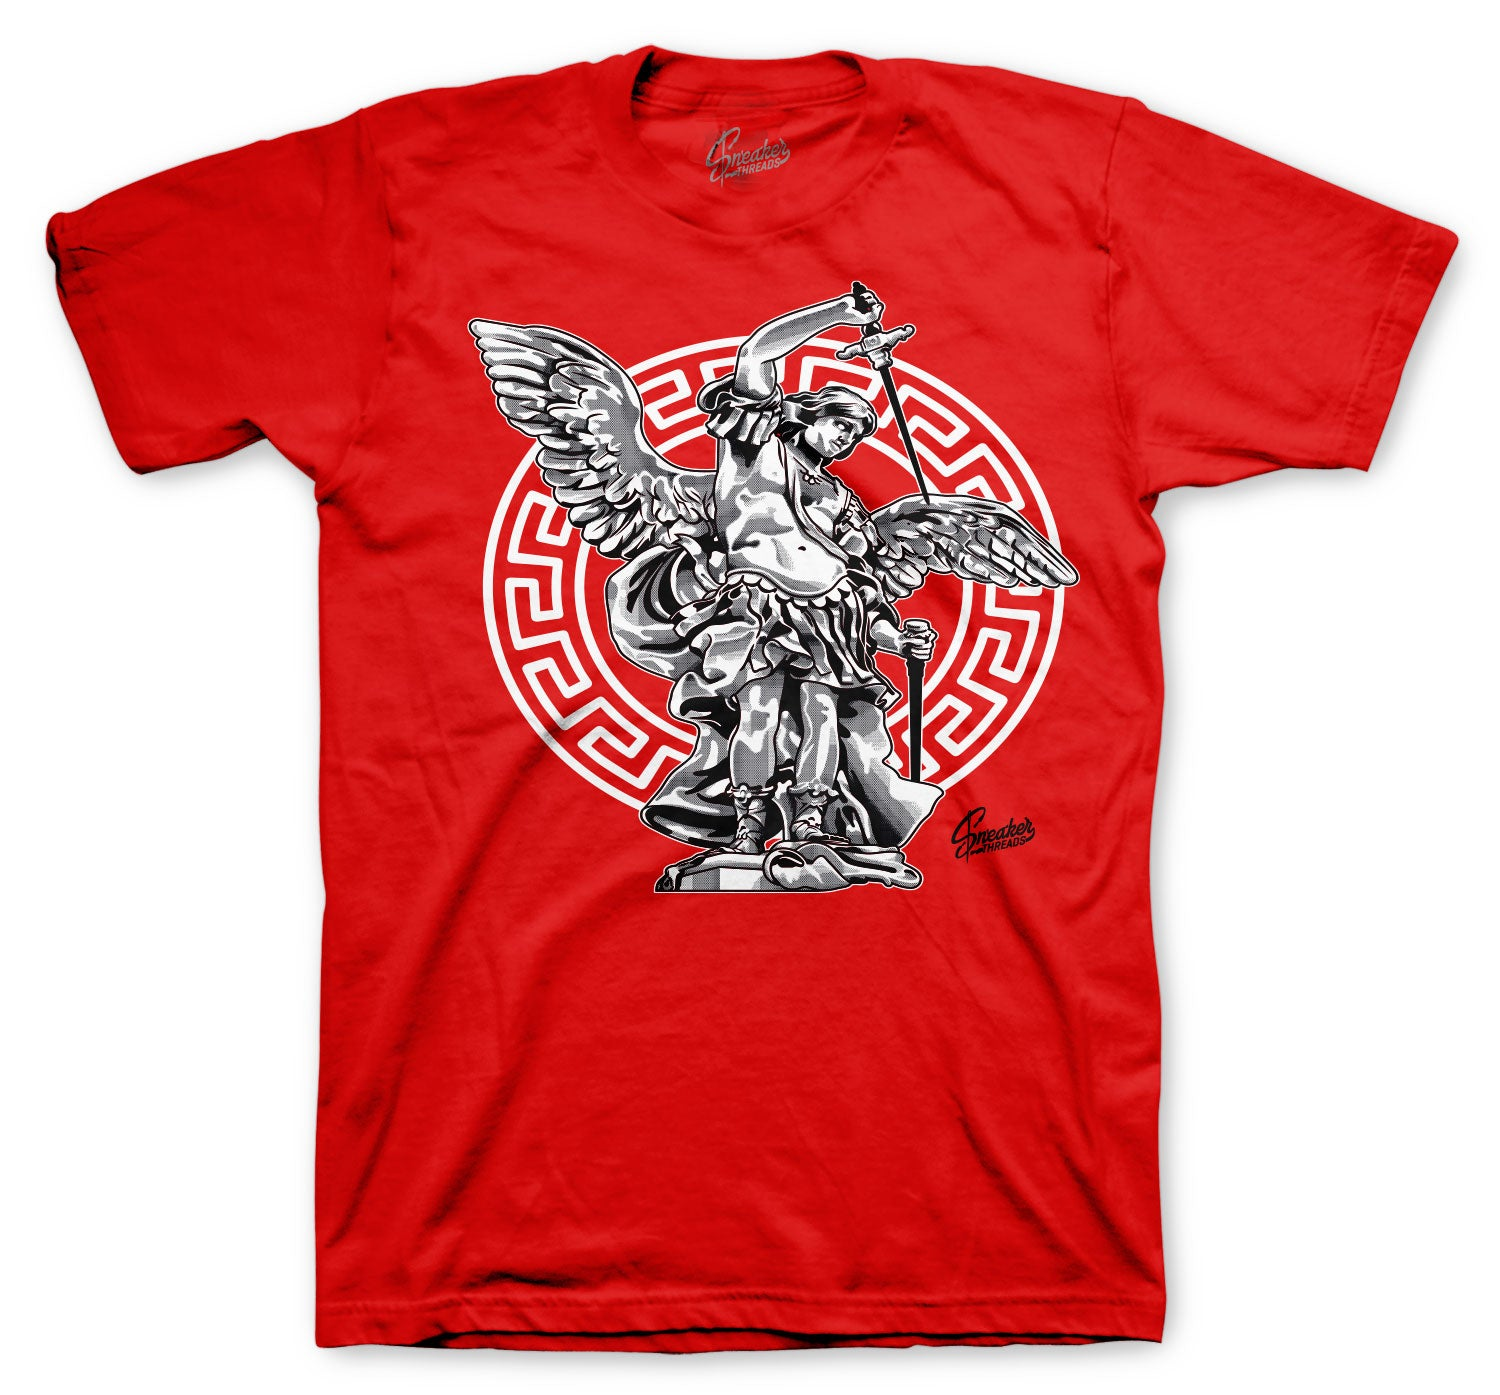 Jordan 6 Carmine Shirt - St. Michael - Red